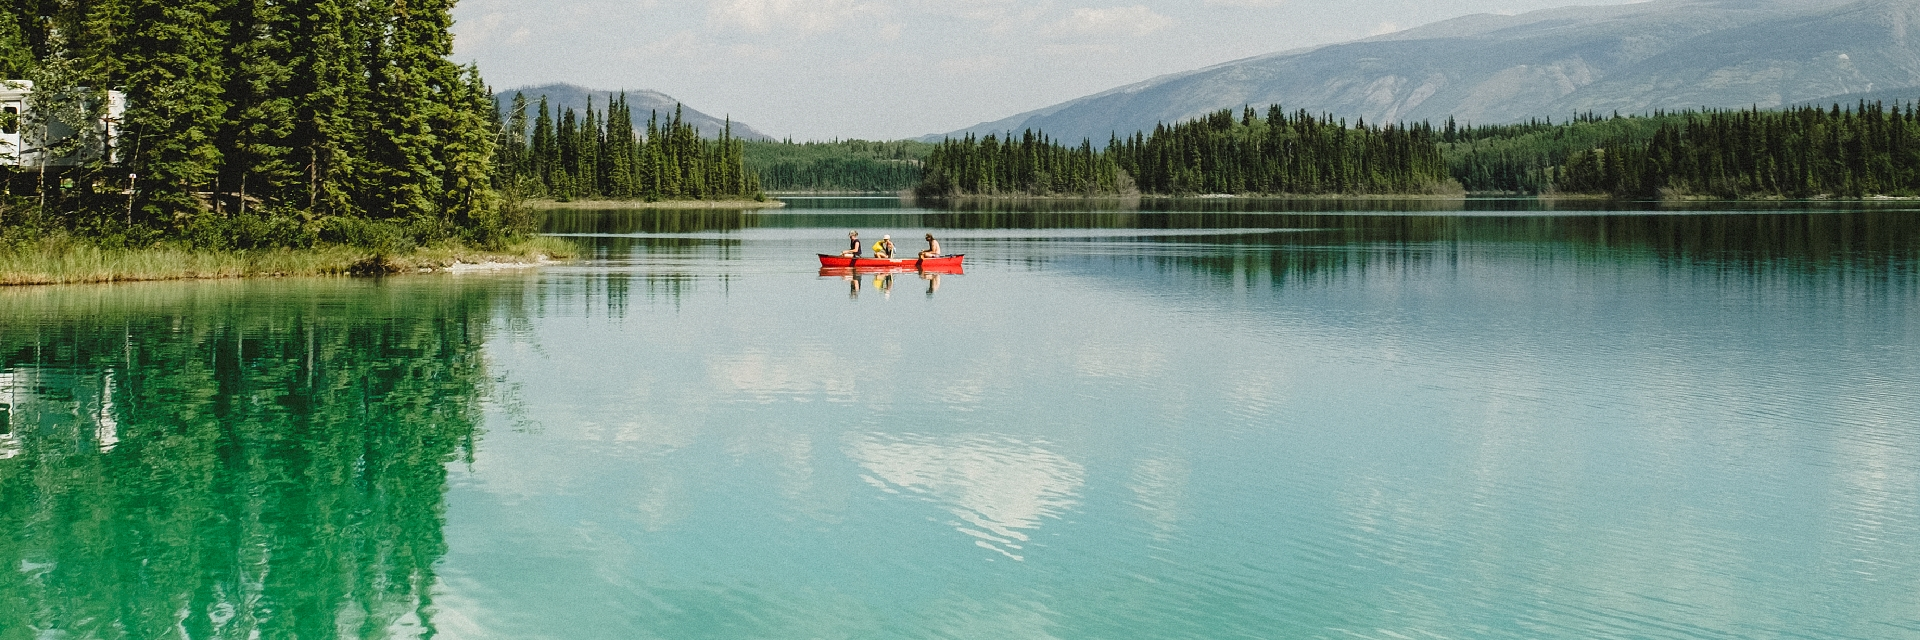 Two people in a red canoe on a bright turquoise lake.